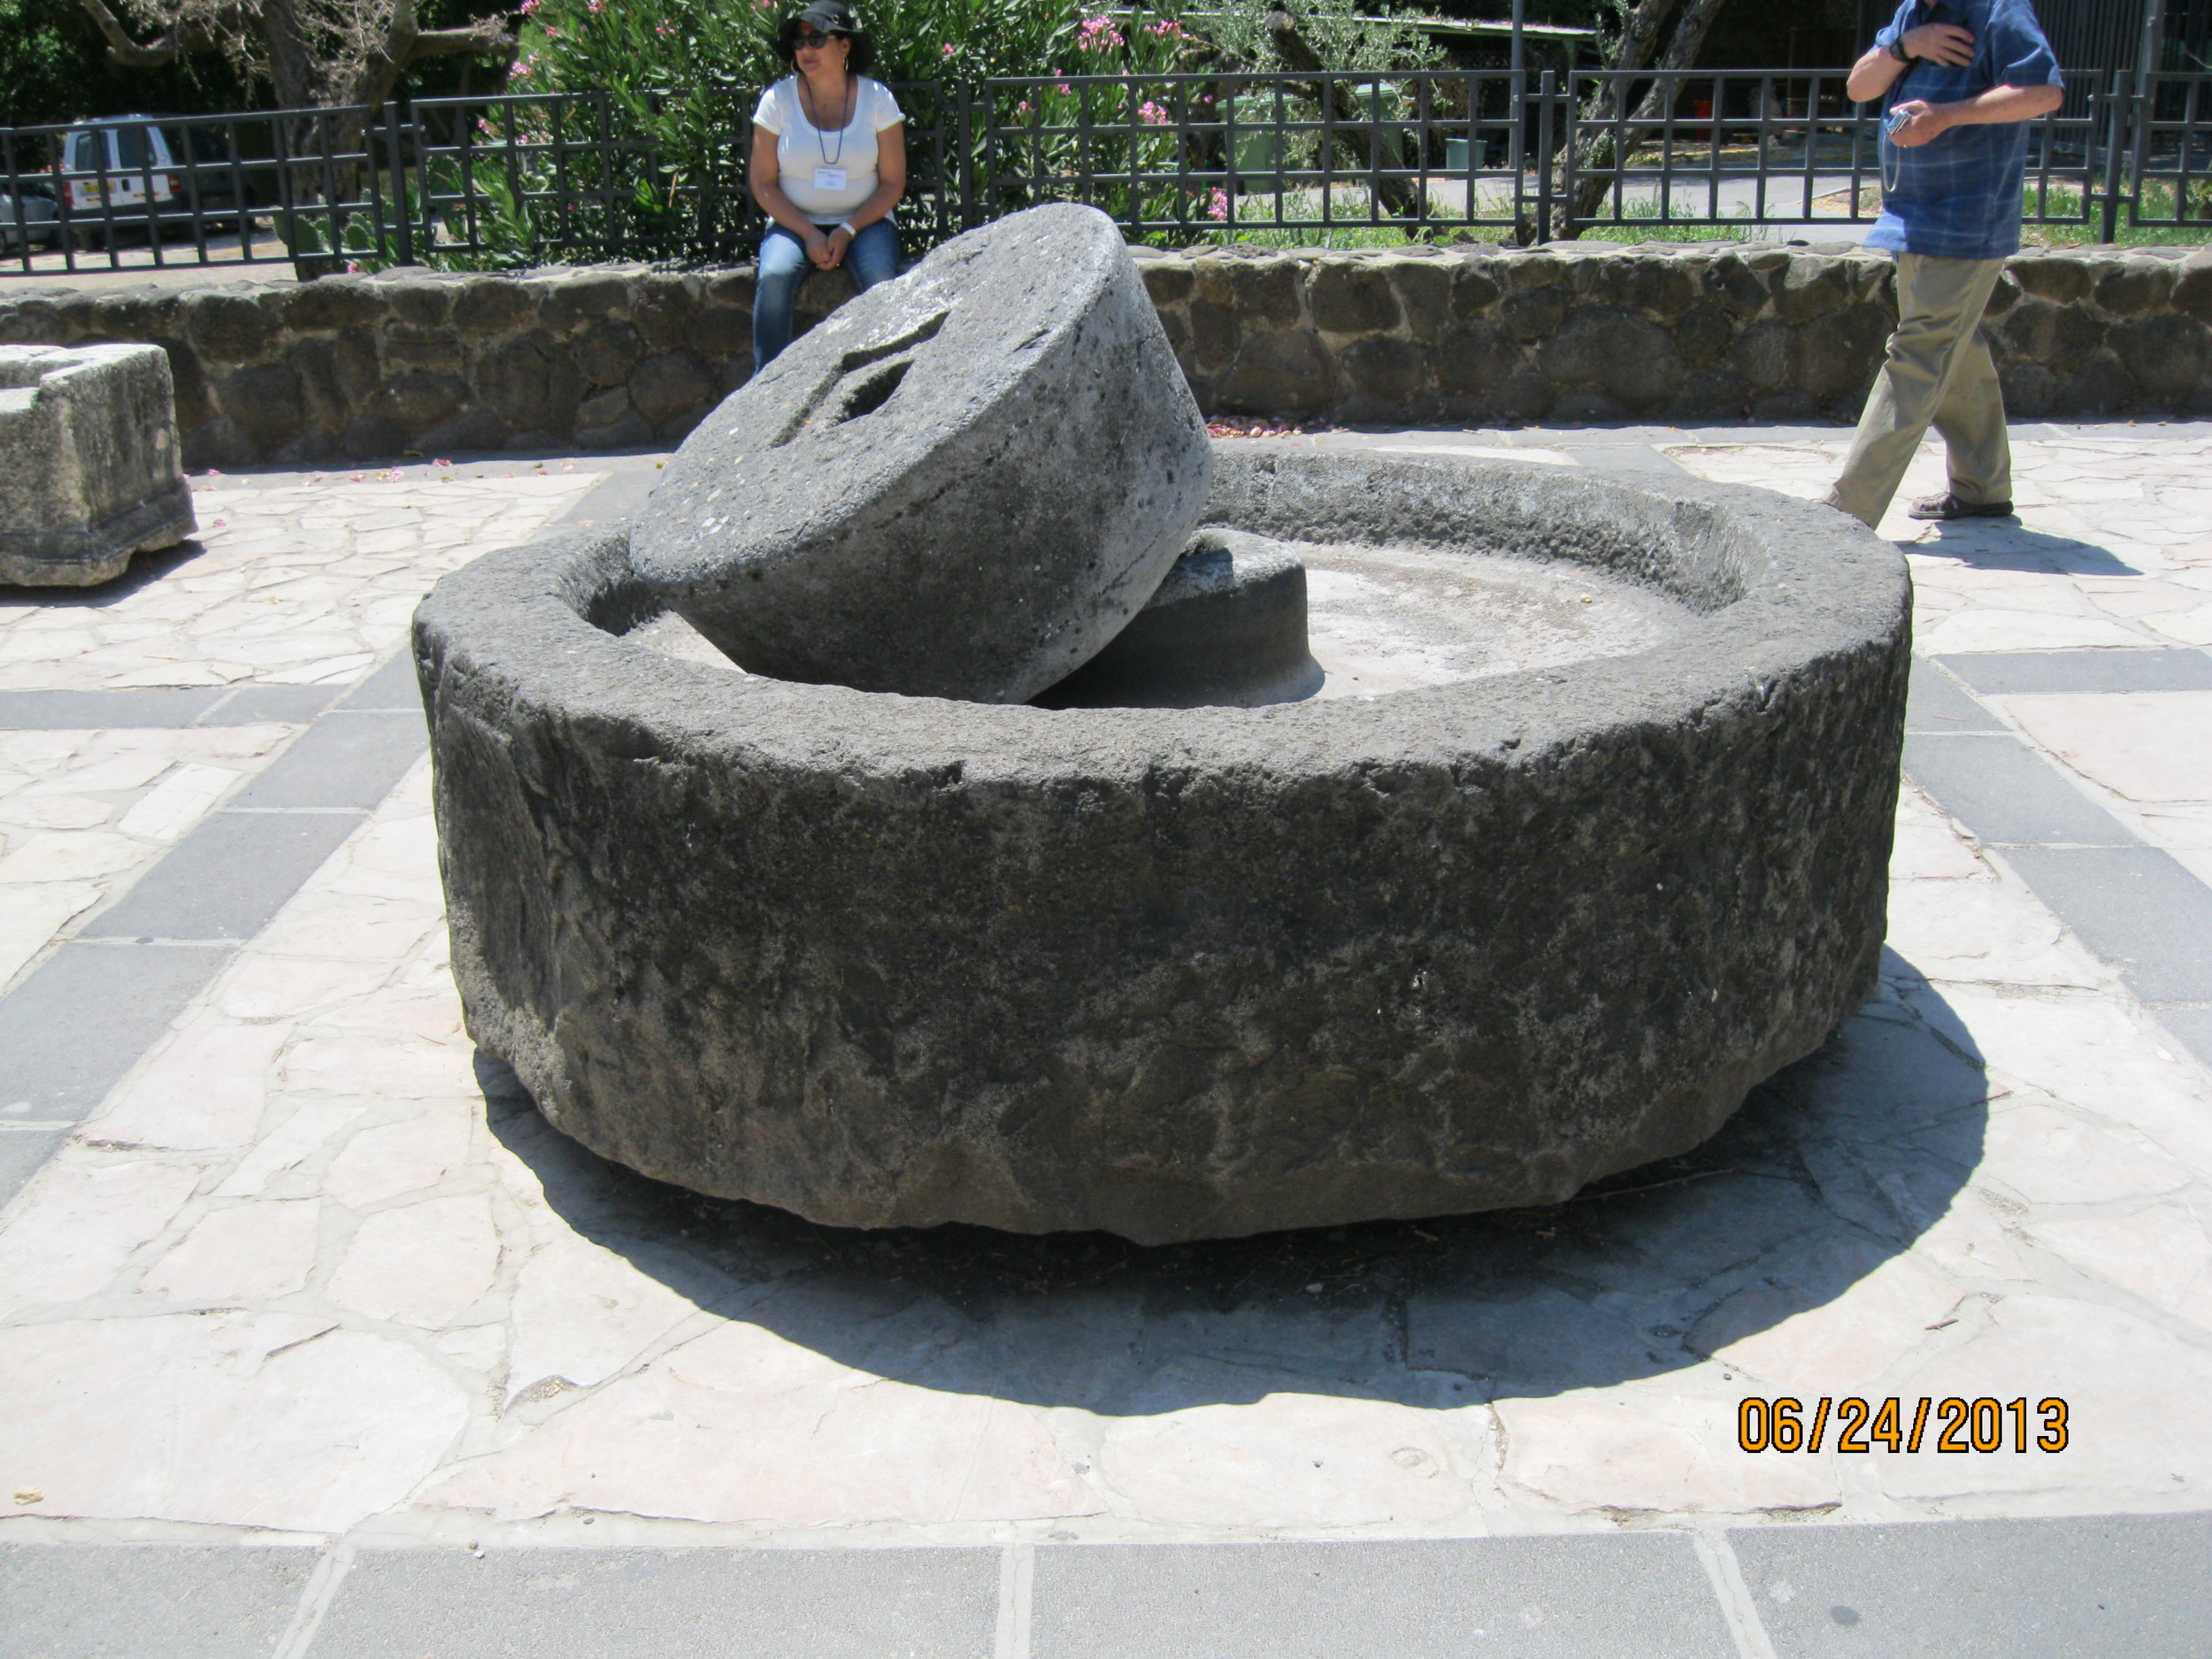 Millstone for making Olive Oil